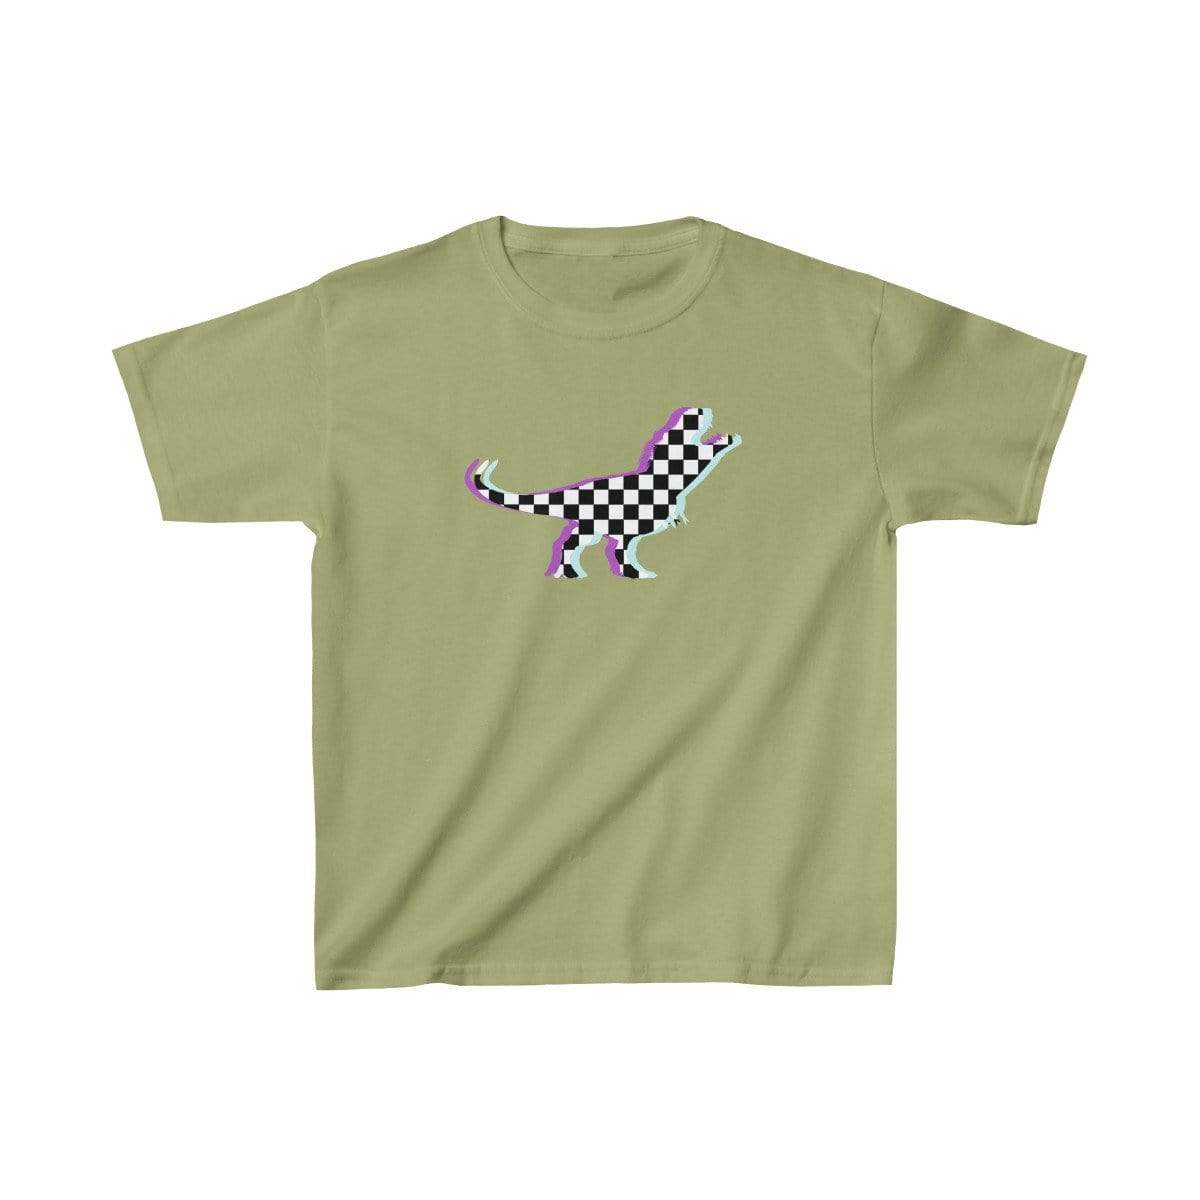 Printify Kids clothes Kiwi / XS Glitch Aesthetic TRex Checker T-Shirt Kids